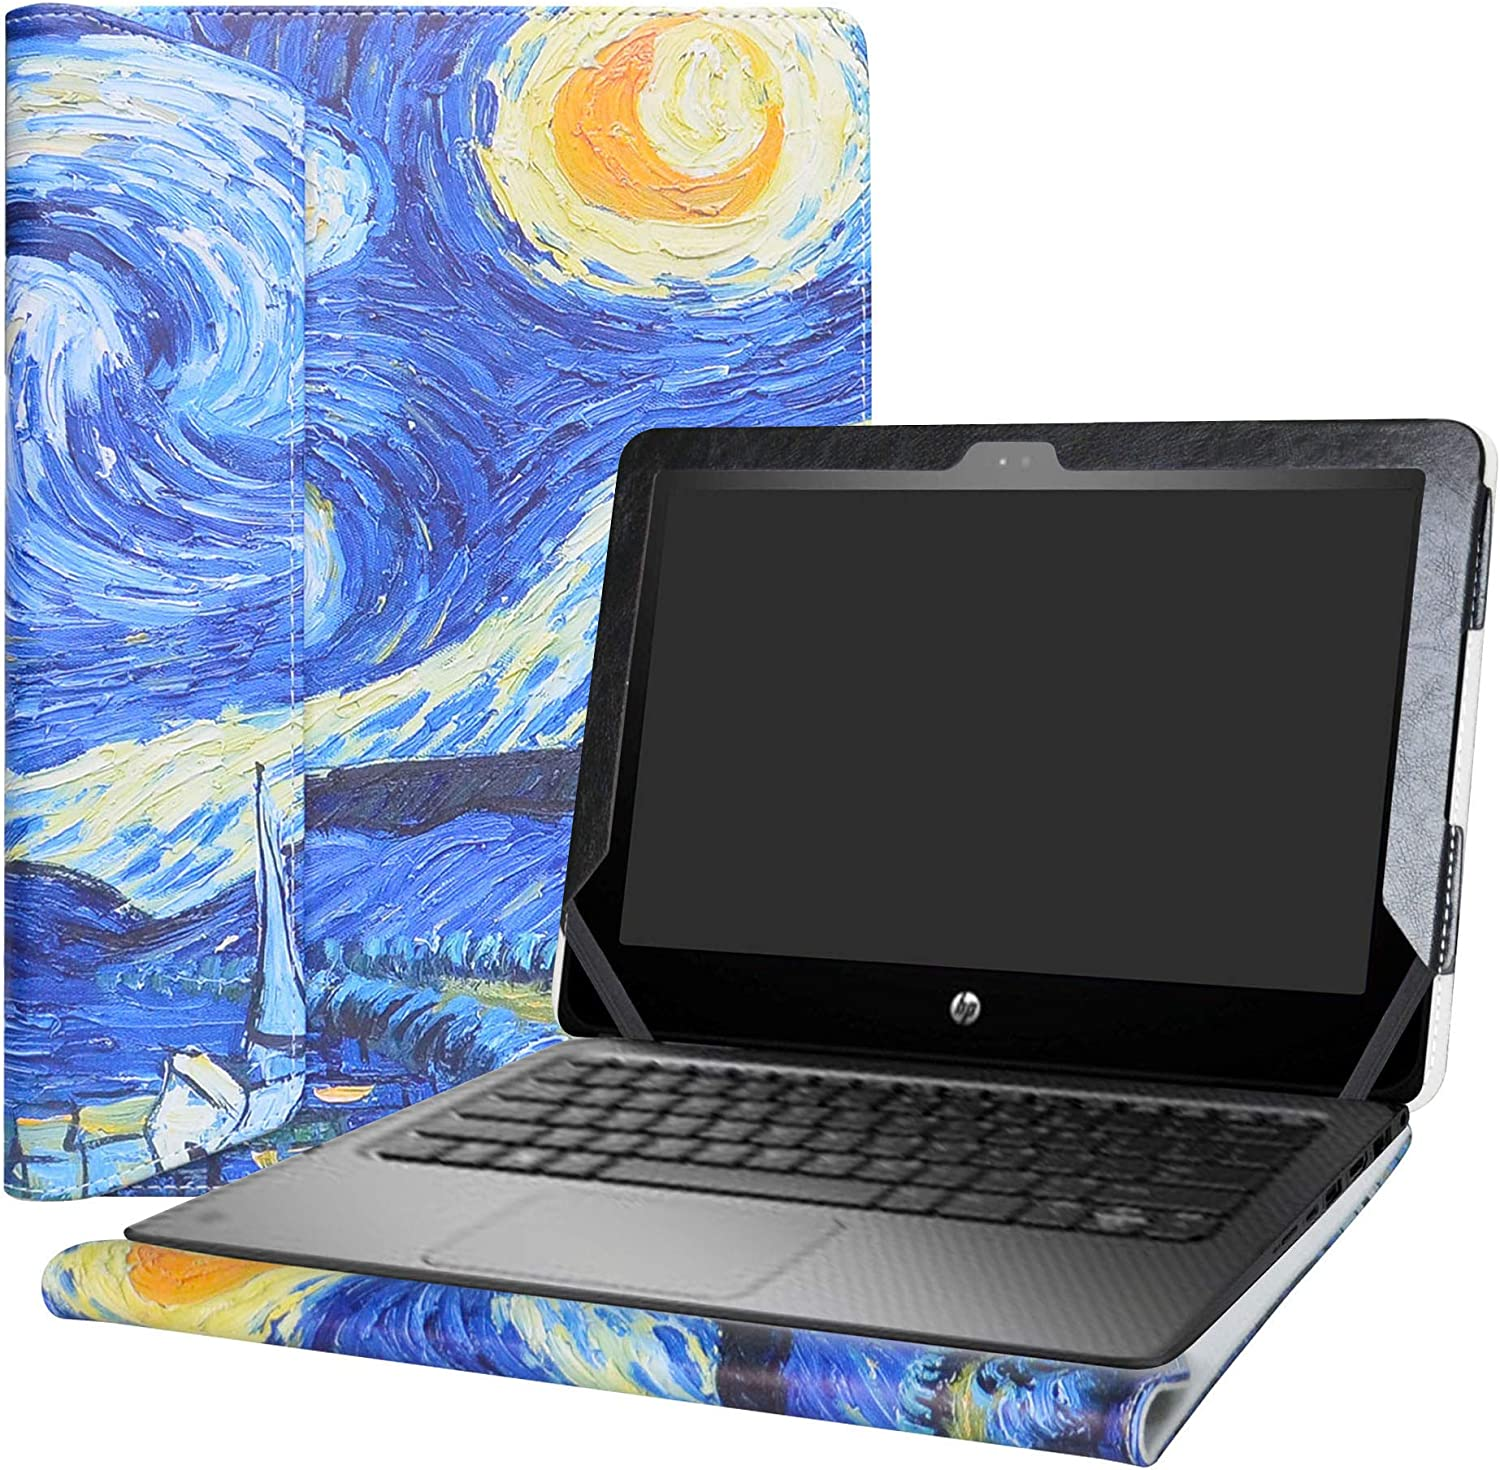 """Alapmk Protective Case Cover For 11.6"""" HP ProBook x360 11 G1 EE / G2 EE /G3 EE / G4 EE Series Laptop(Warning:Not fit HP other 11.6 inch Laptop),Starry Night"""